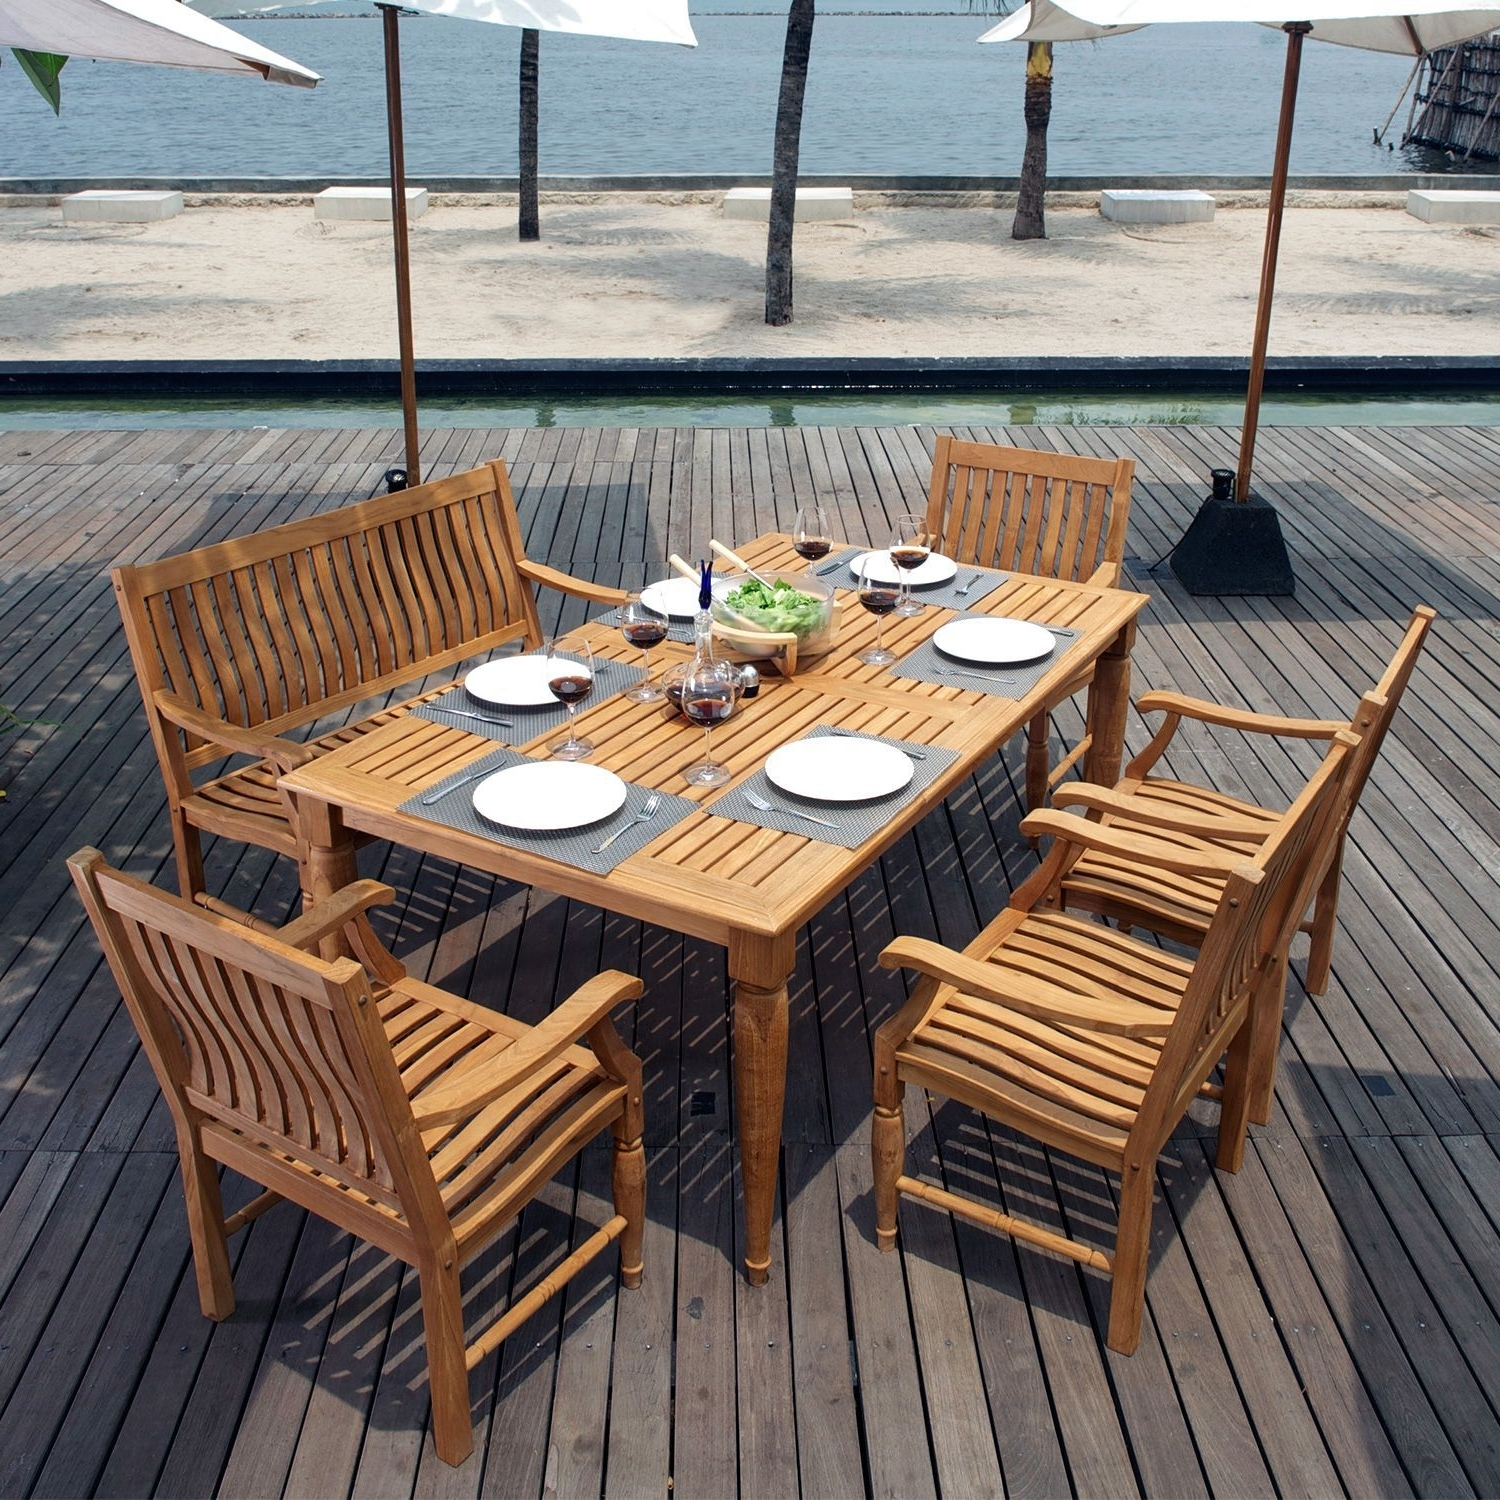 Patio Conversation Sets At Sam's Club With Recent Deluxe Teak 6 Pc (View 13 of 20)